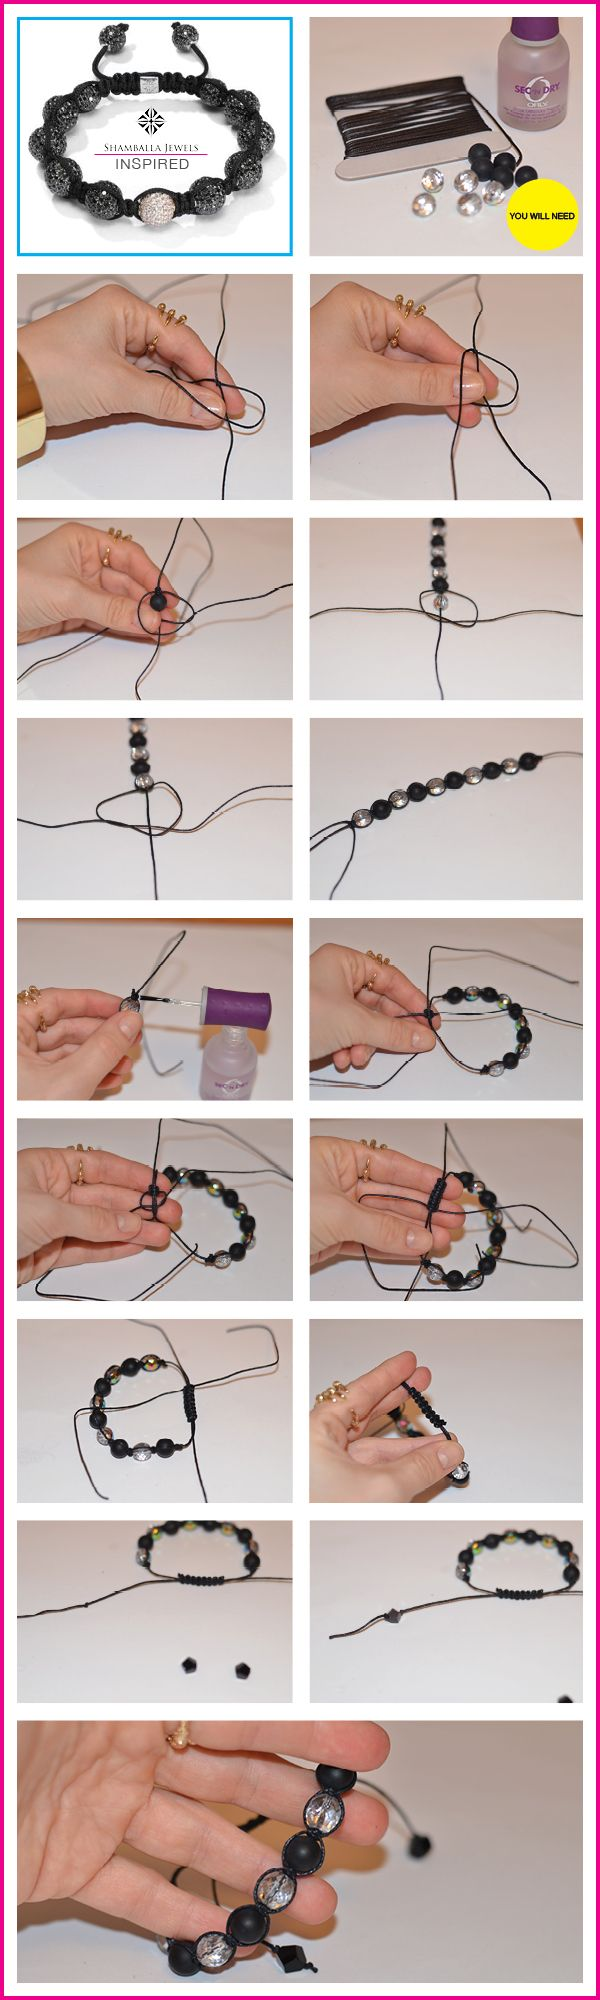 Guest Post: DIY Shamballa Bracelet from Katrine of Make It and Fake It